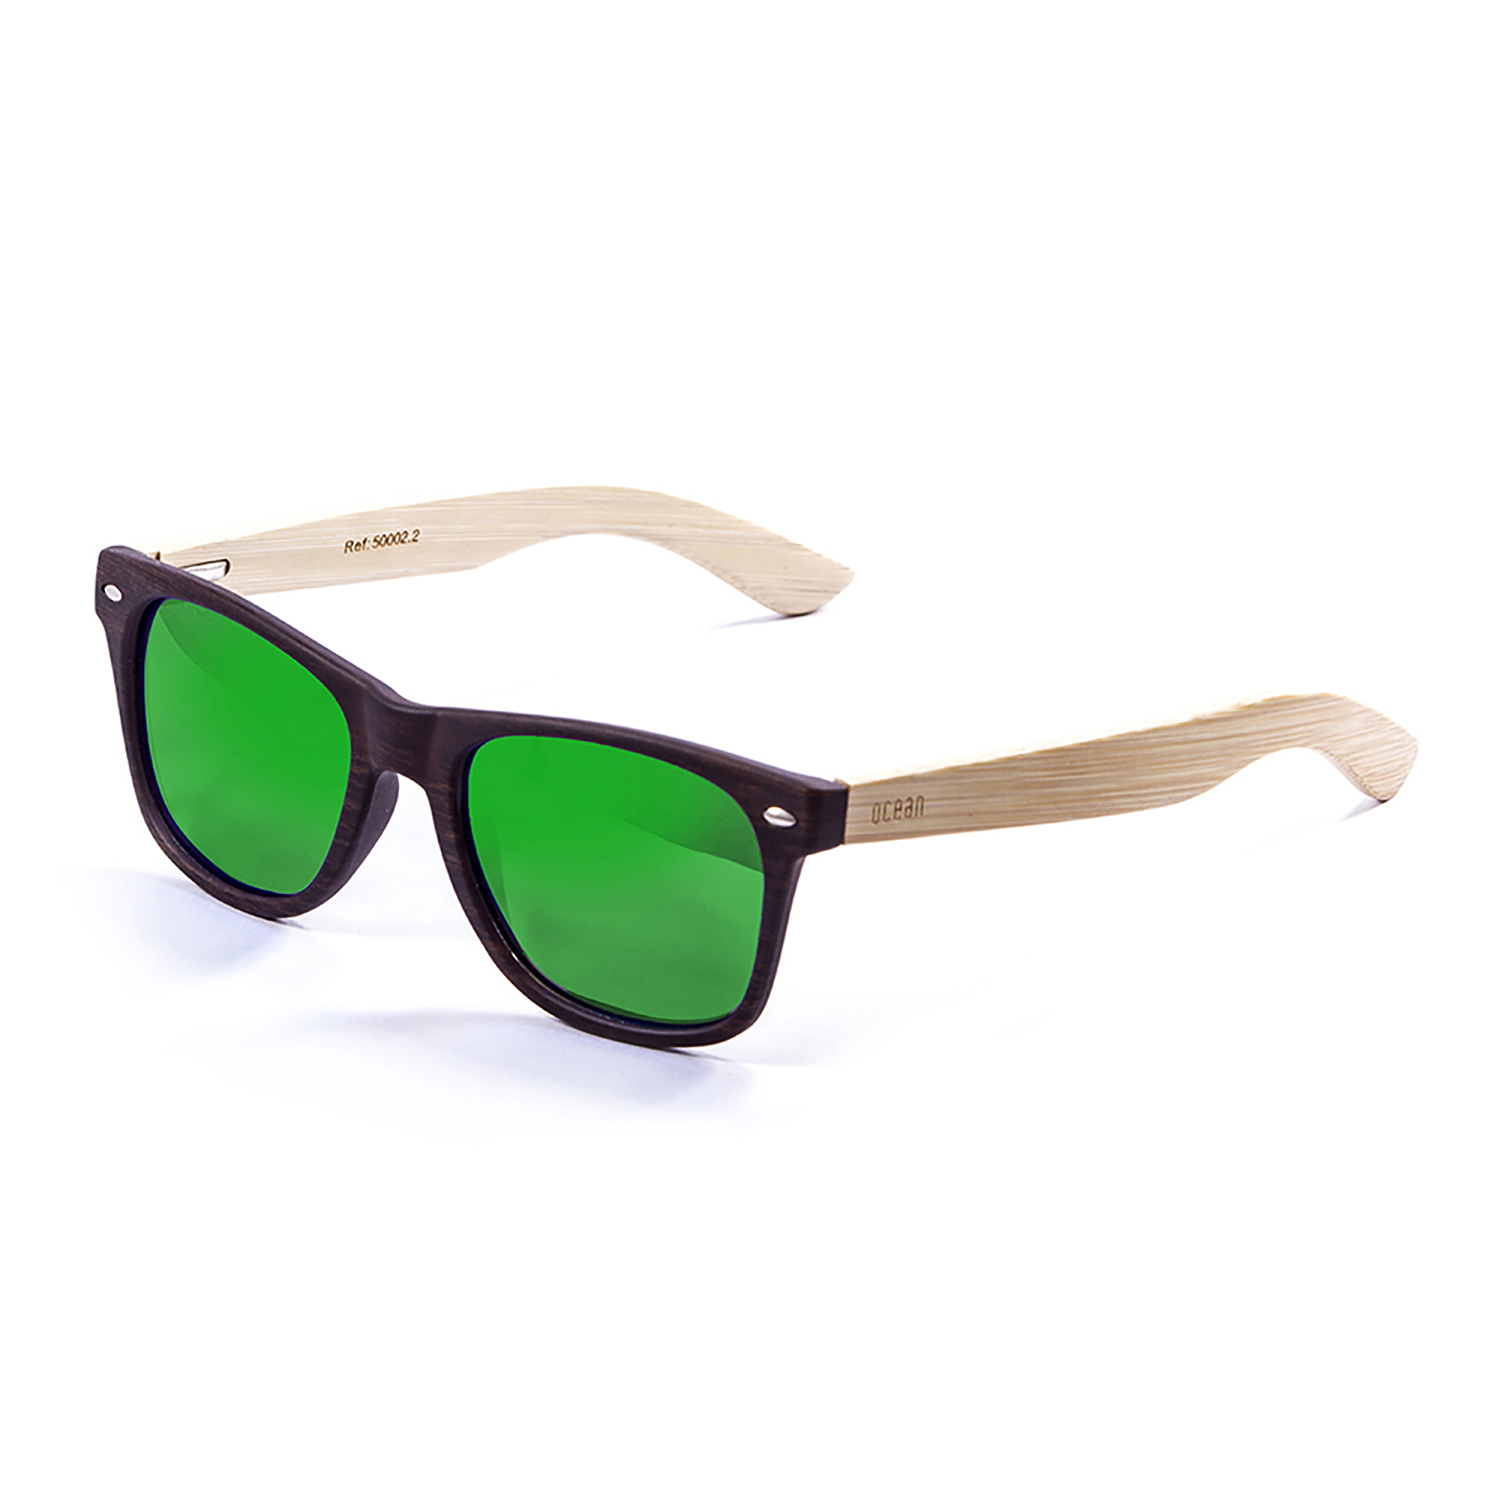 OCEAN BEACH WOOD bamboo natural  arm with dark brown frame with green revo lens 50002.2